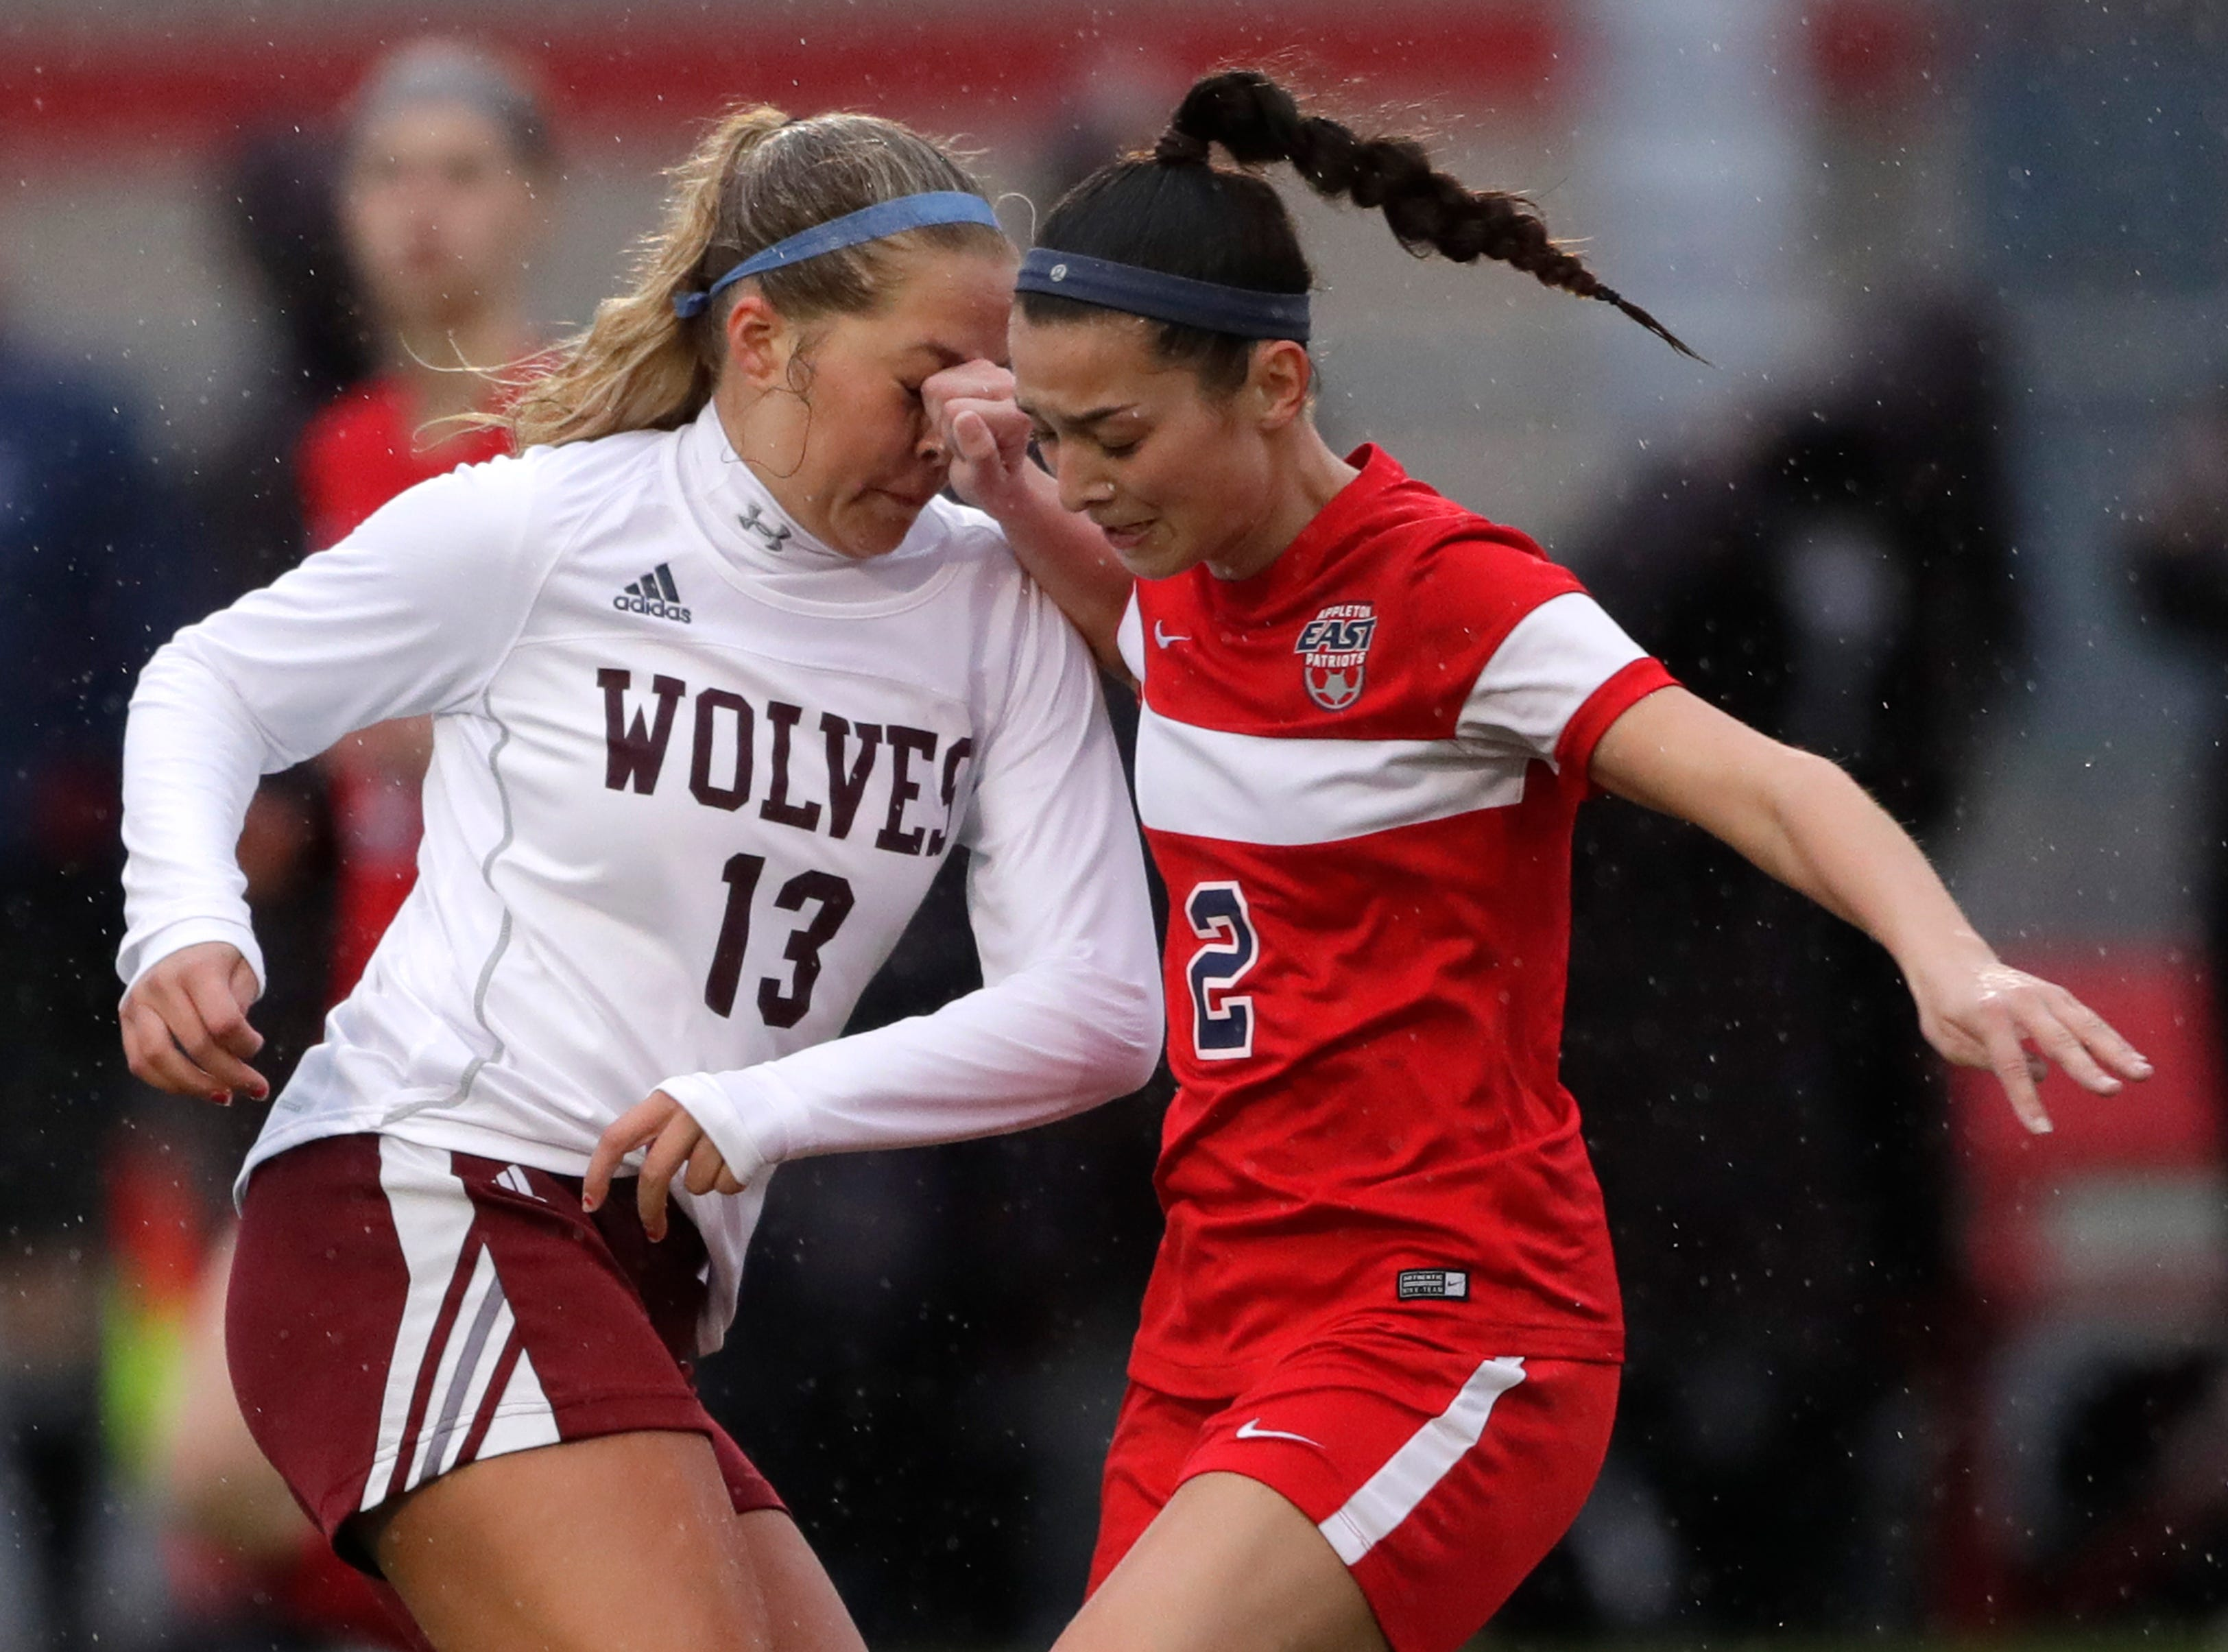 Winneconne High School's Senya Josephson (13) takes a fist to the nose as she tries to cut back against Appleton East High School's Ellie Behnke (2) during their girls soccer game Thursday, April 25, 2019, in Appleton, Wis. 